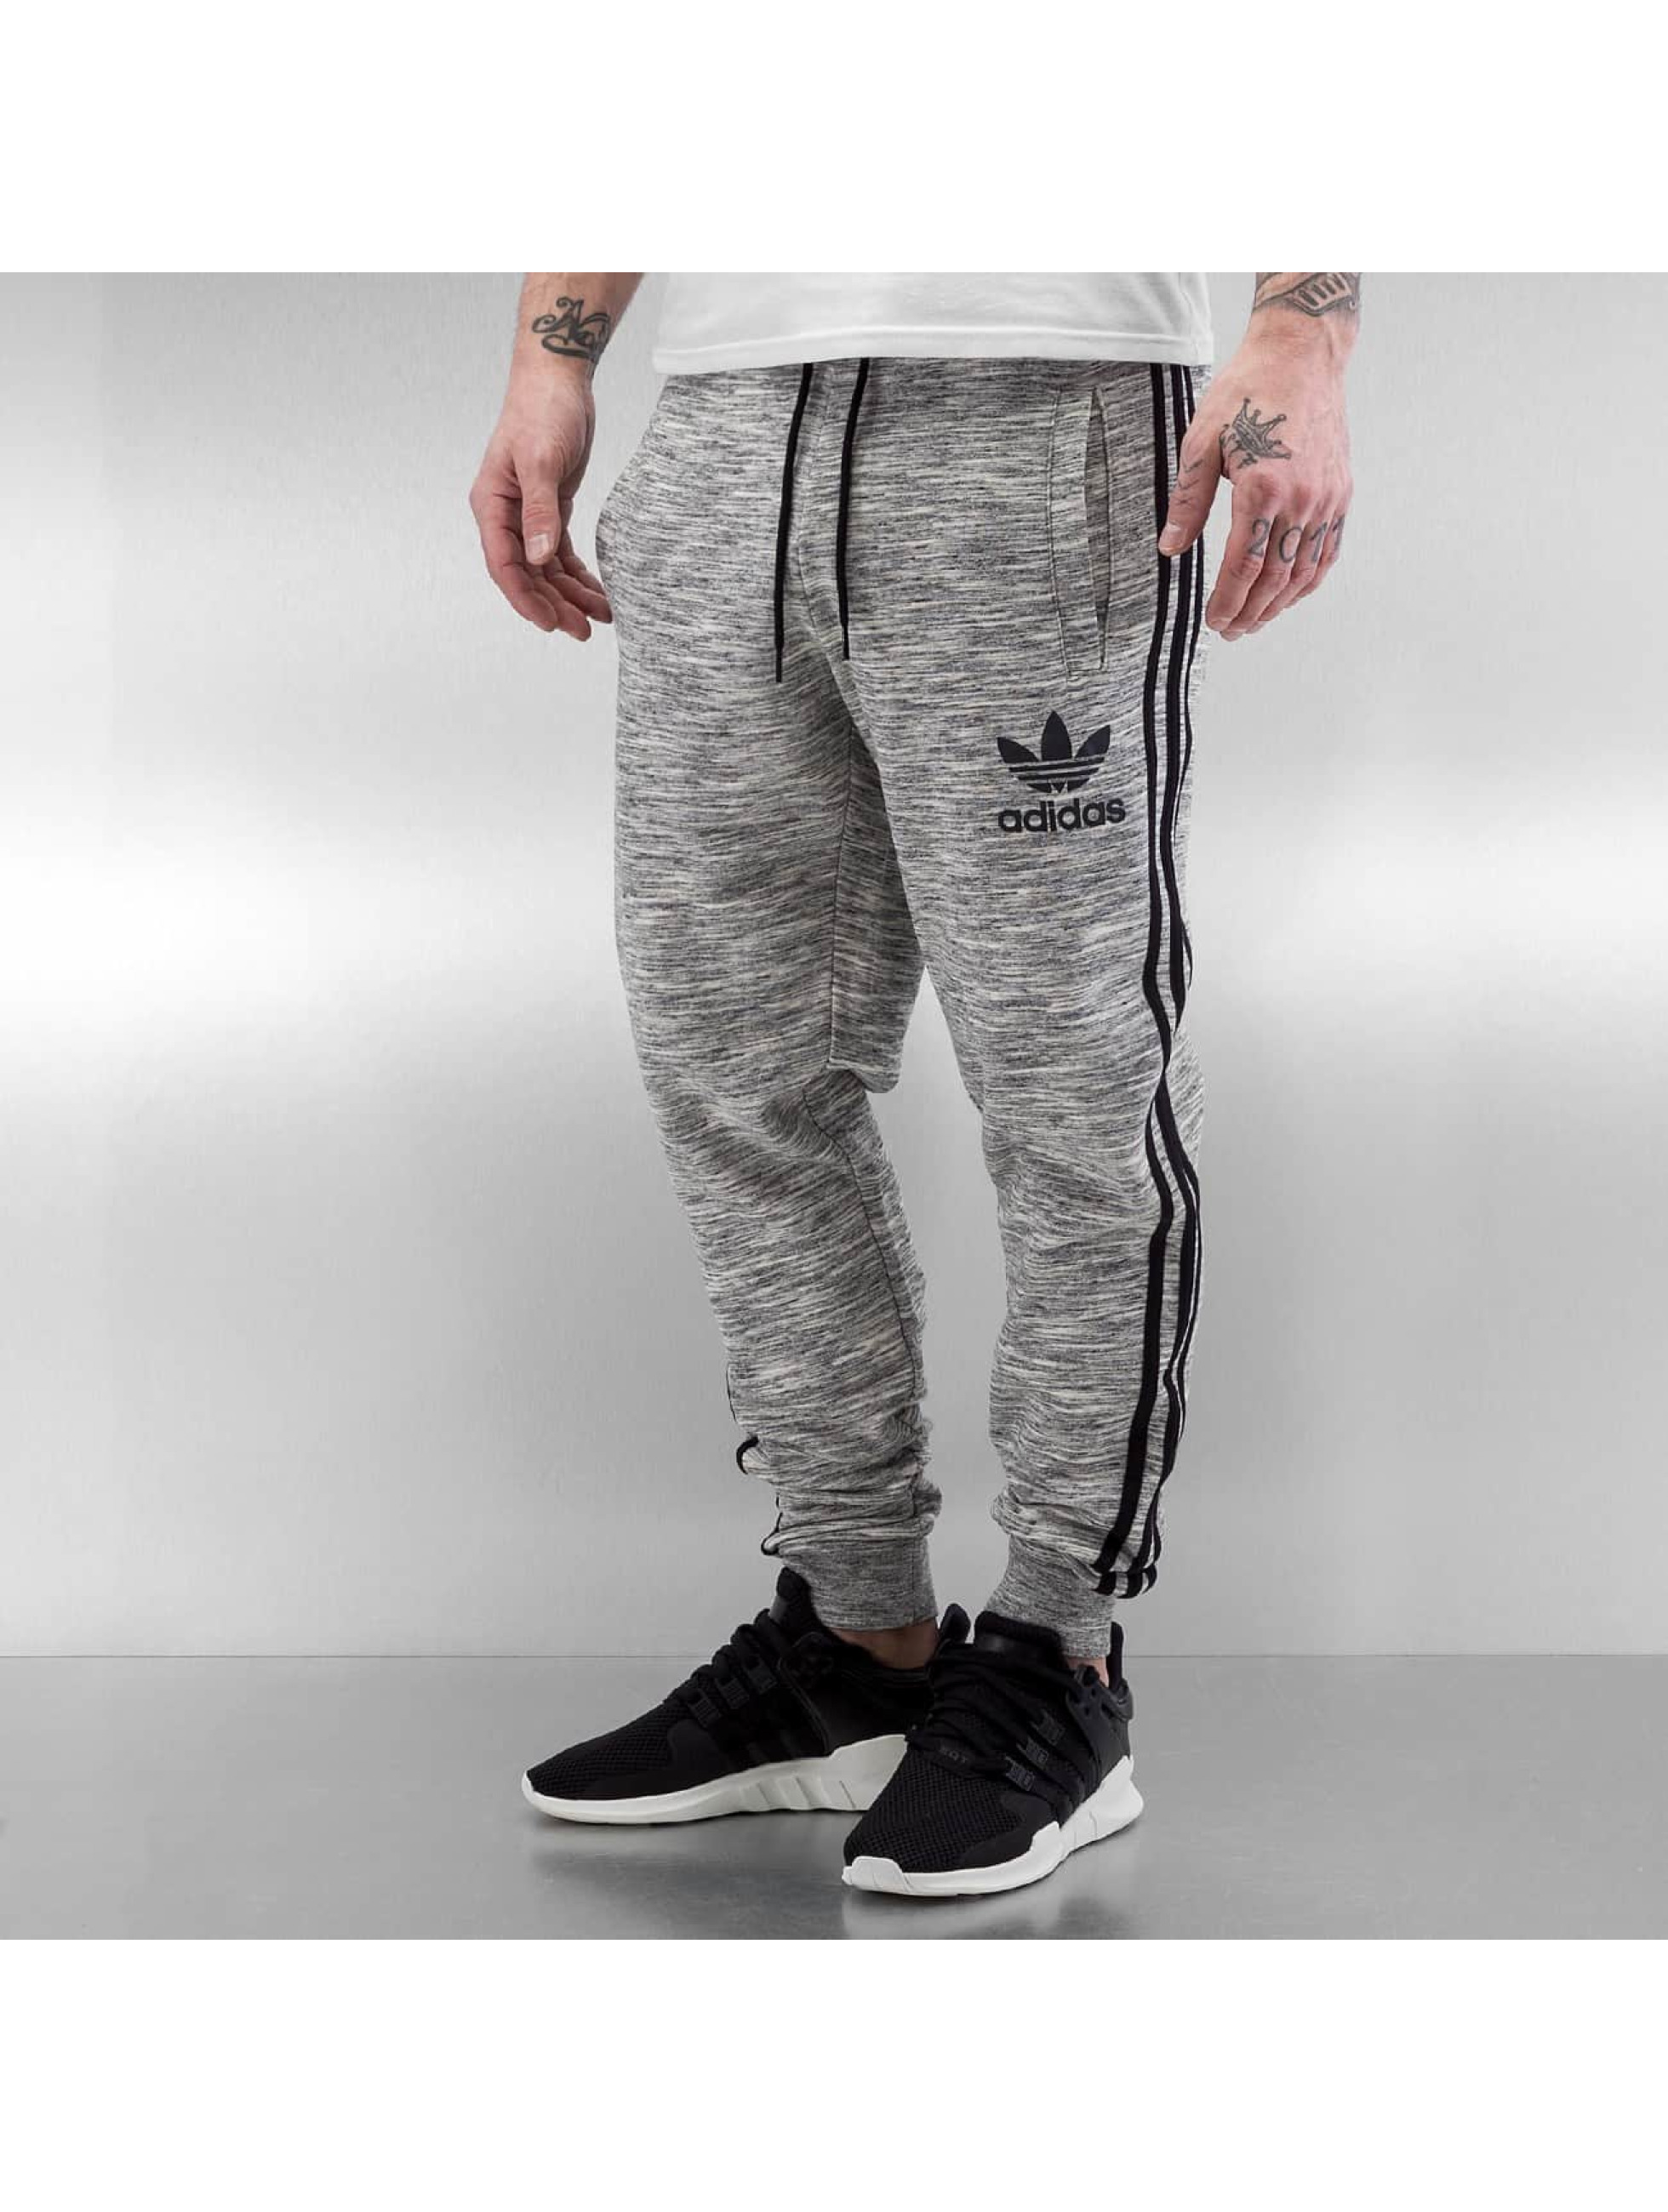 adidas clfn french terry gris homme jogging adidas acheter pas cher pantalon 303193. Black Bedroom Furniture Sets. Home Design Ideas